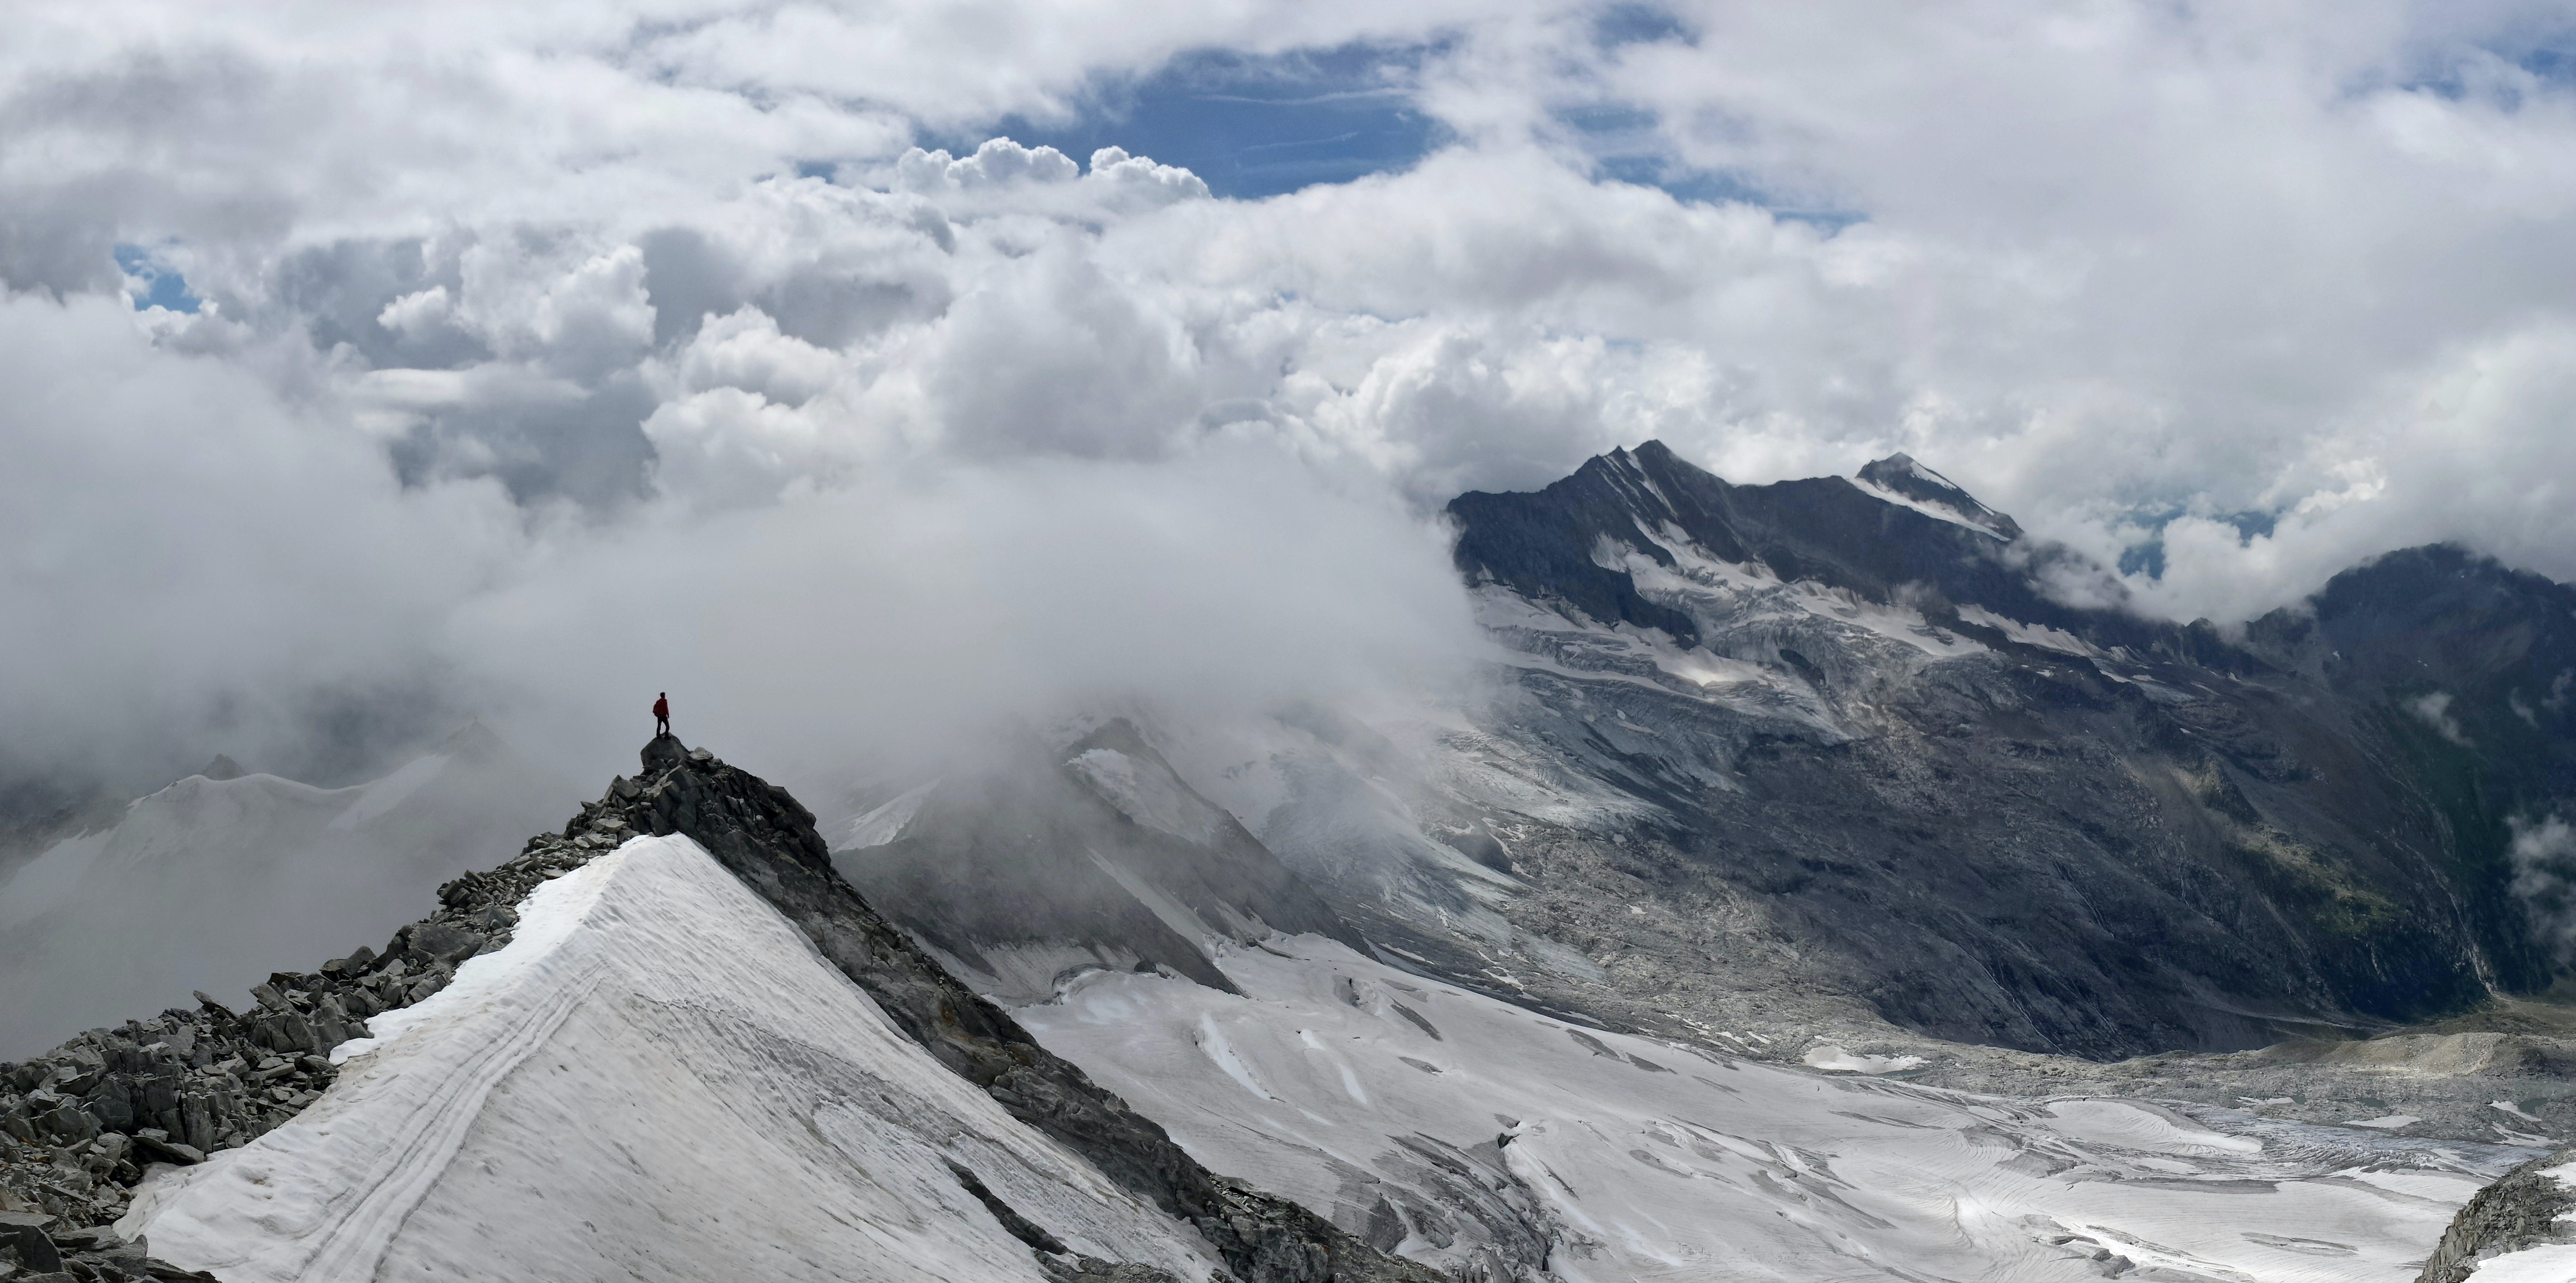 person standing on top of mountain covered with snow